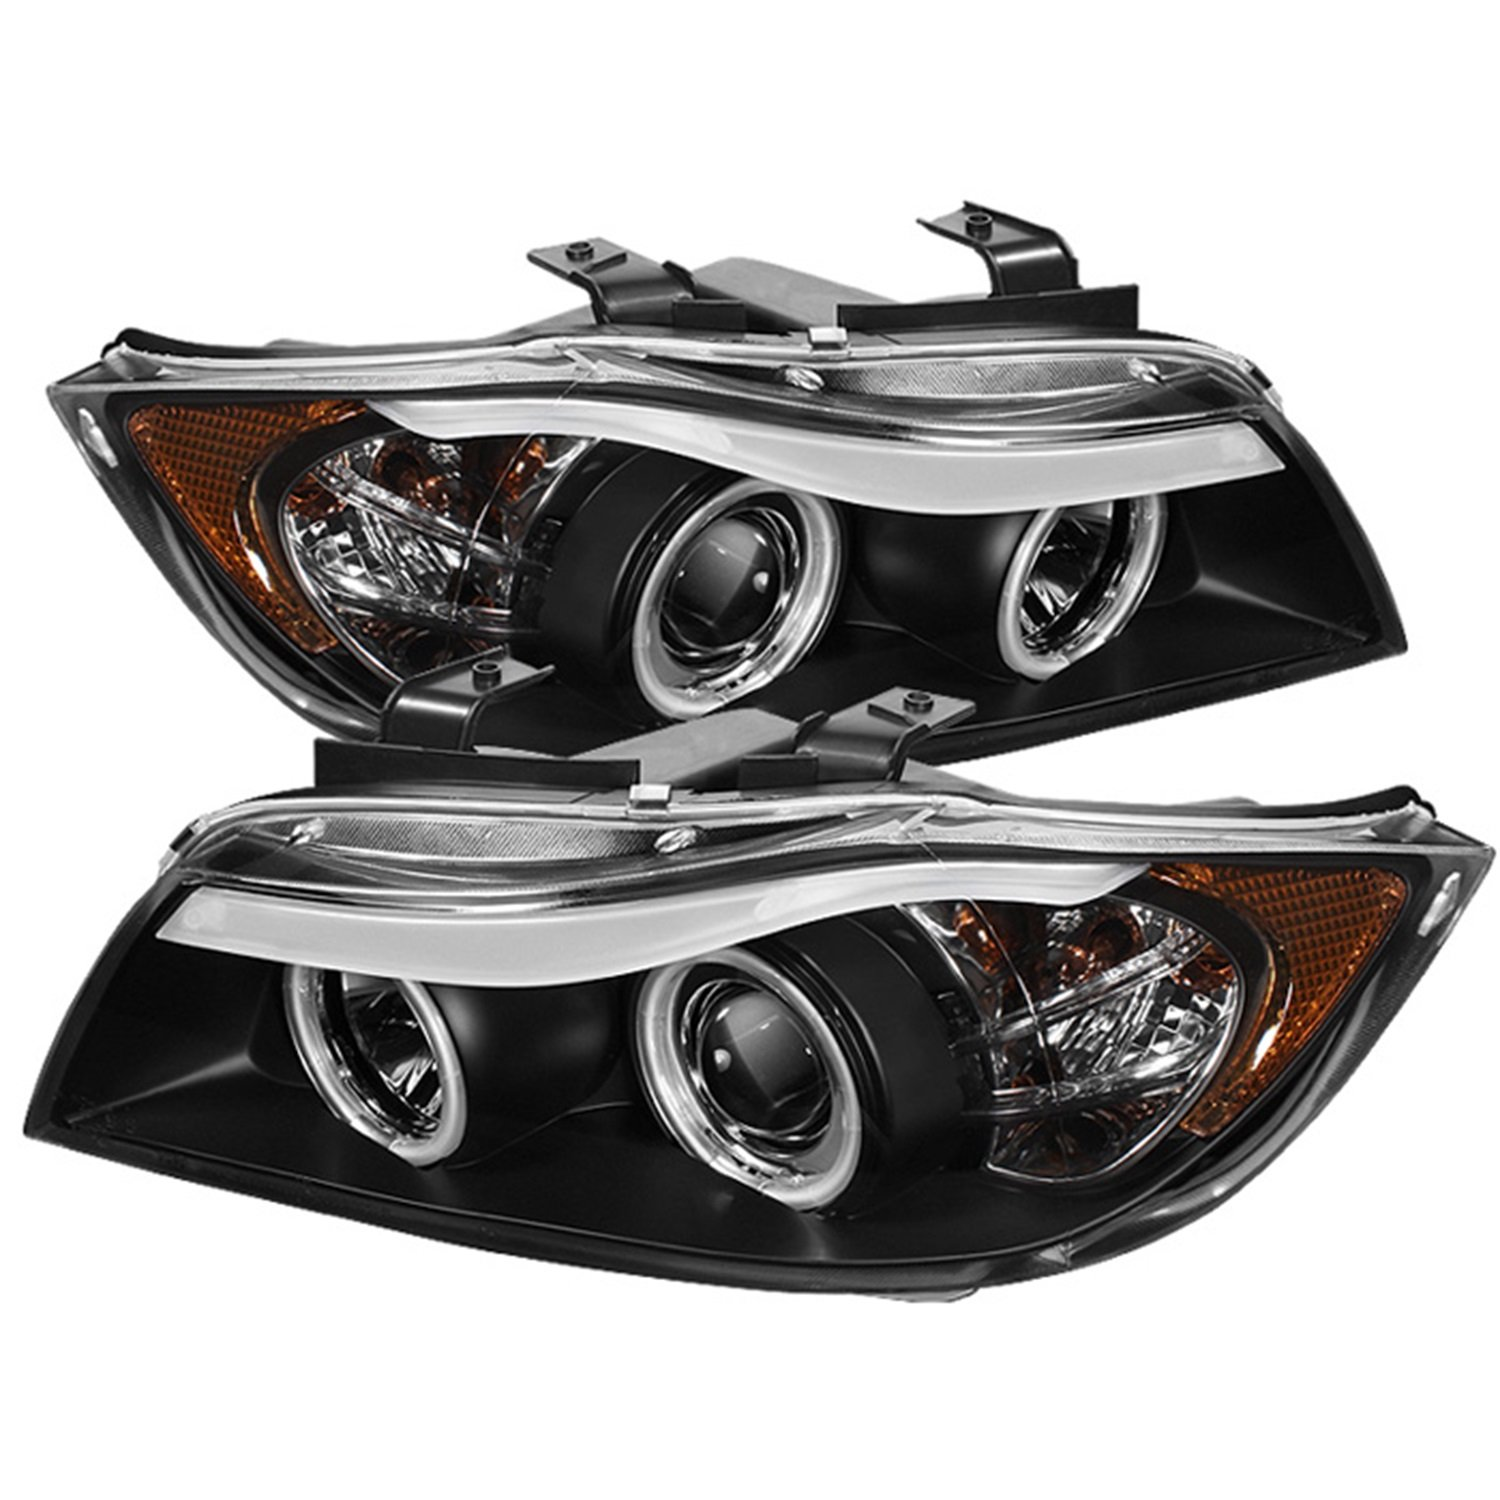 projector bmw signal itm headlights series halo bk dual for hl led loading headlight is black image